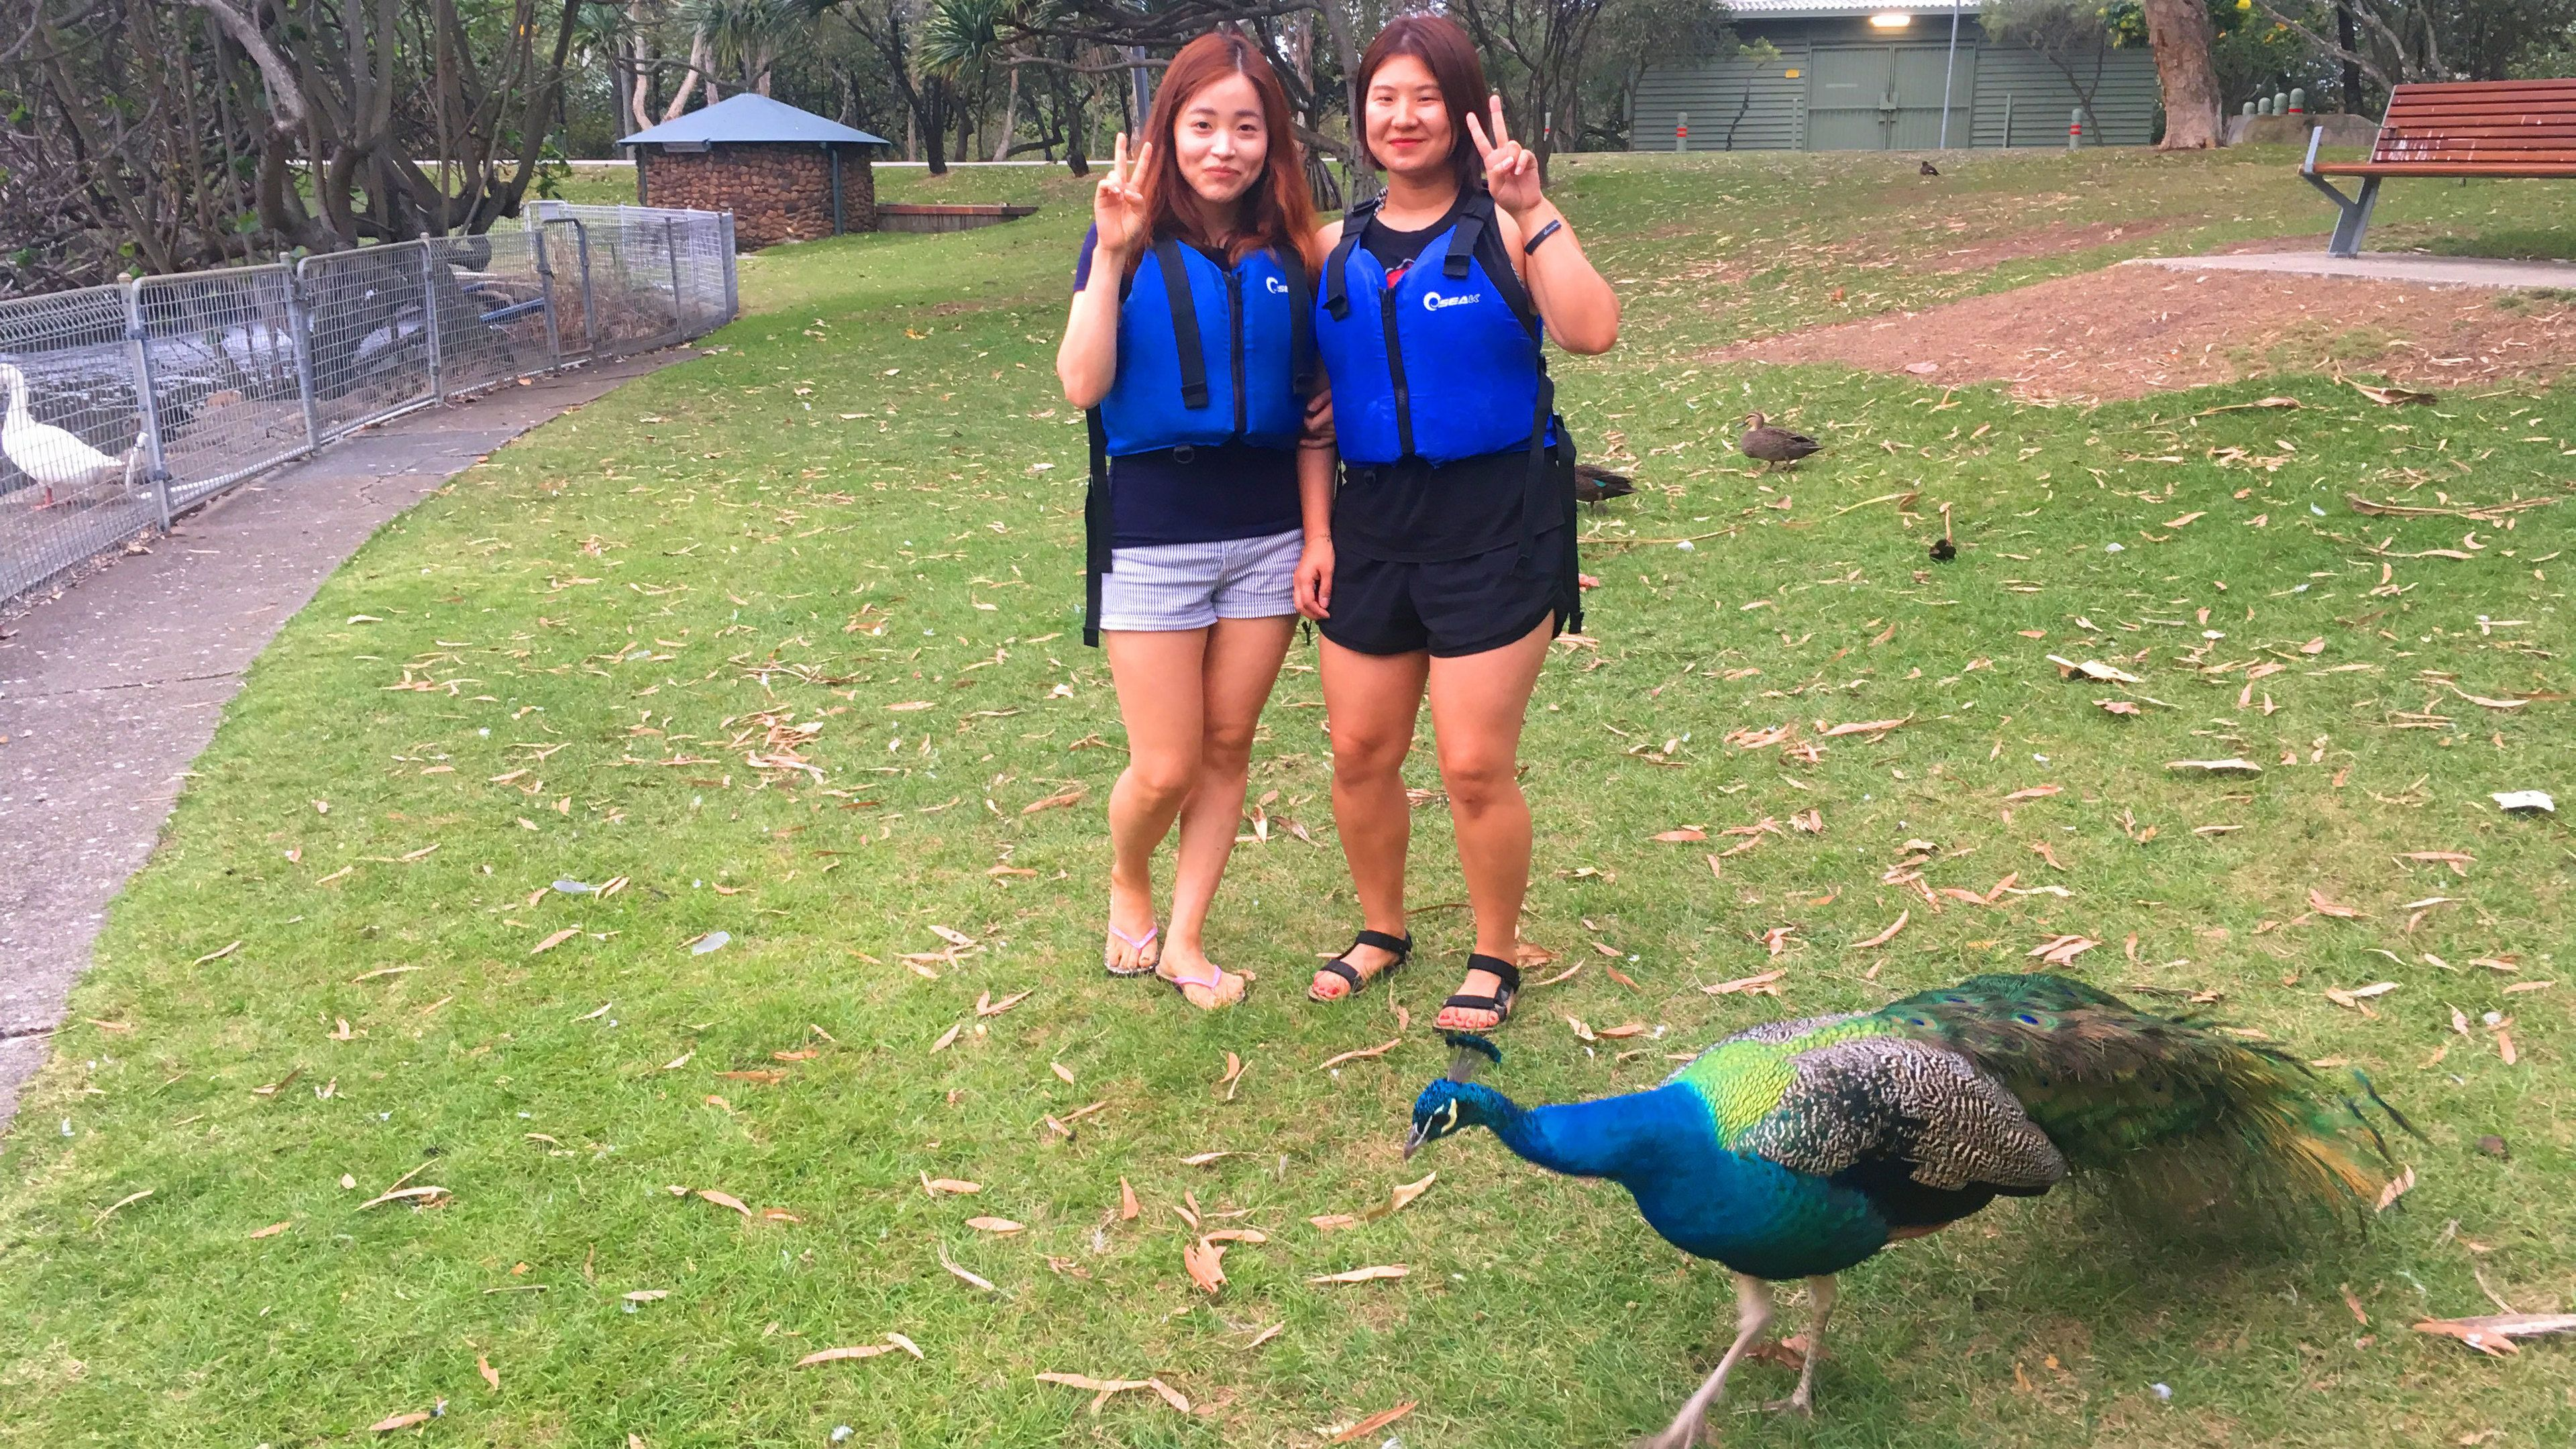 Two women pose next to a peacock